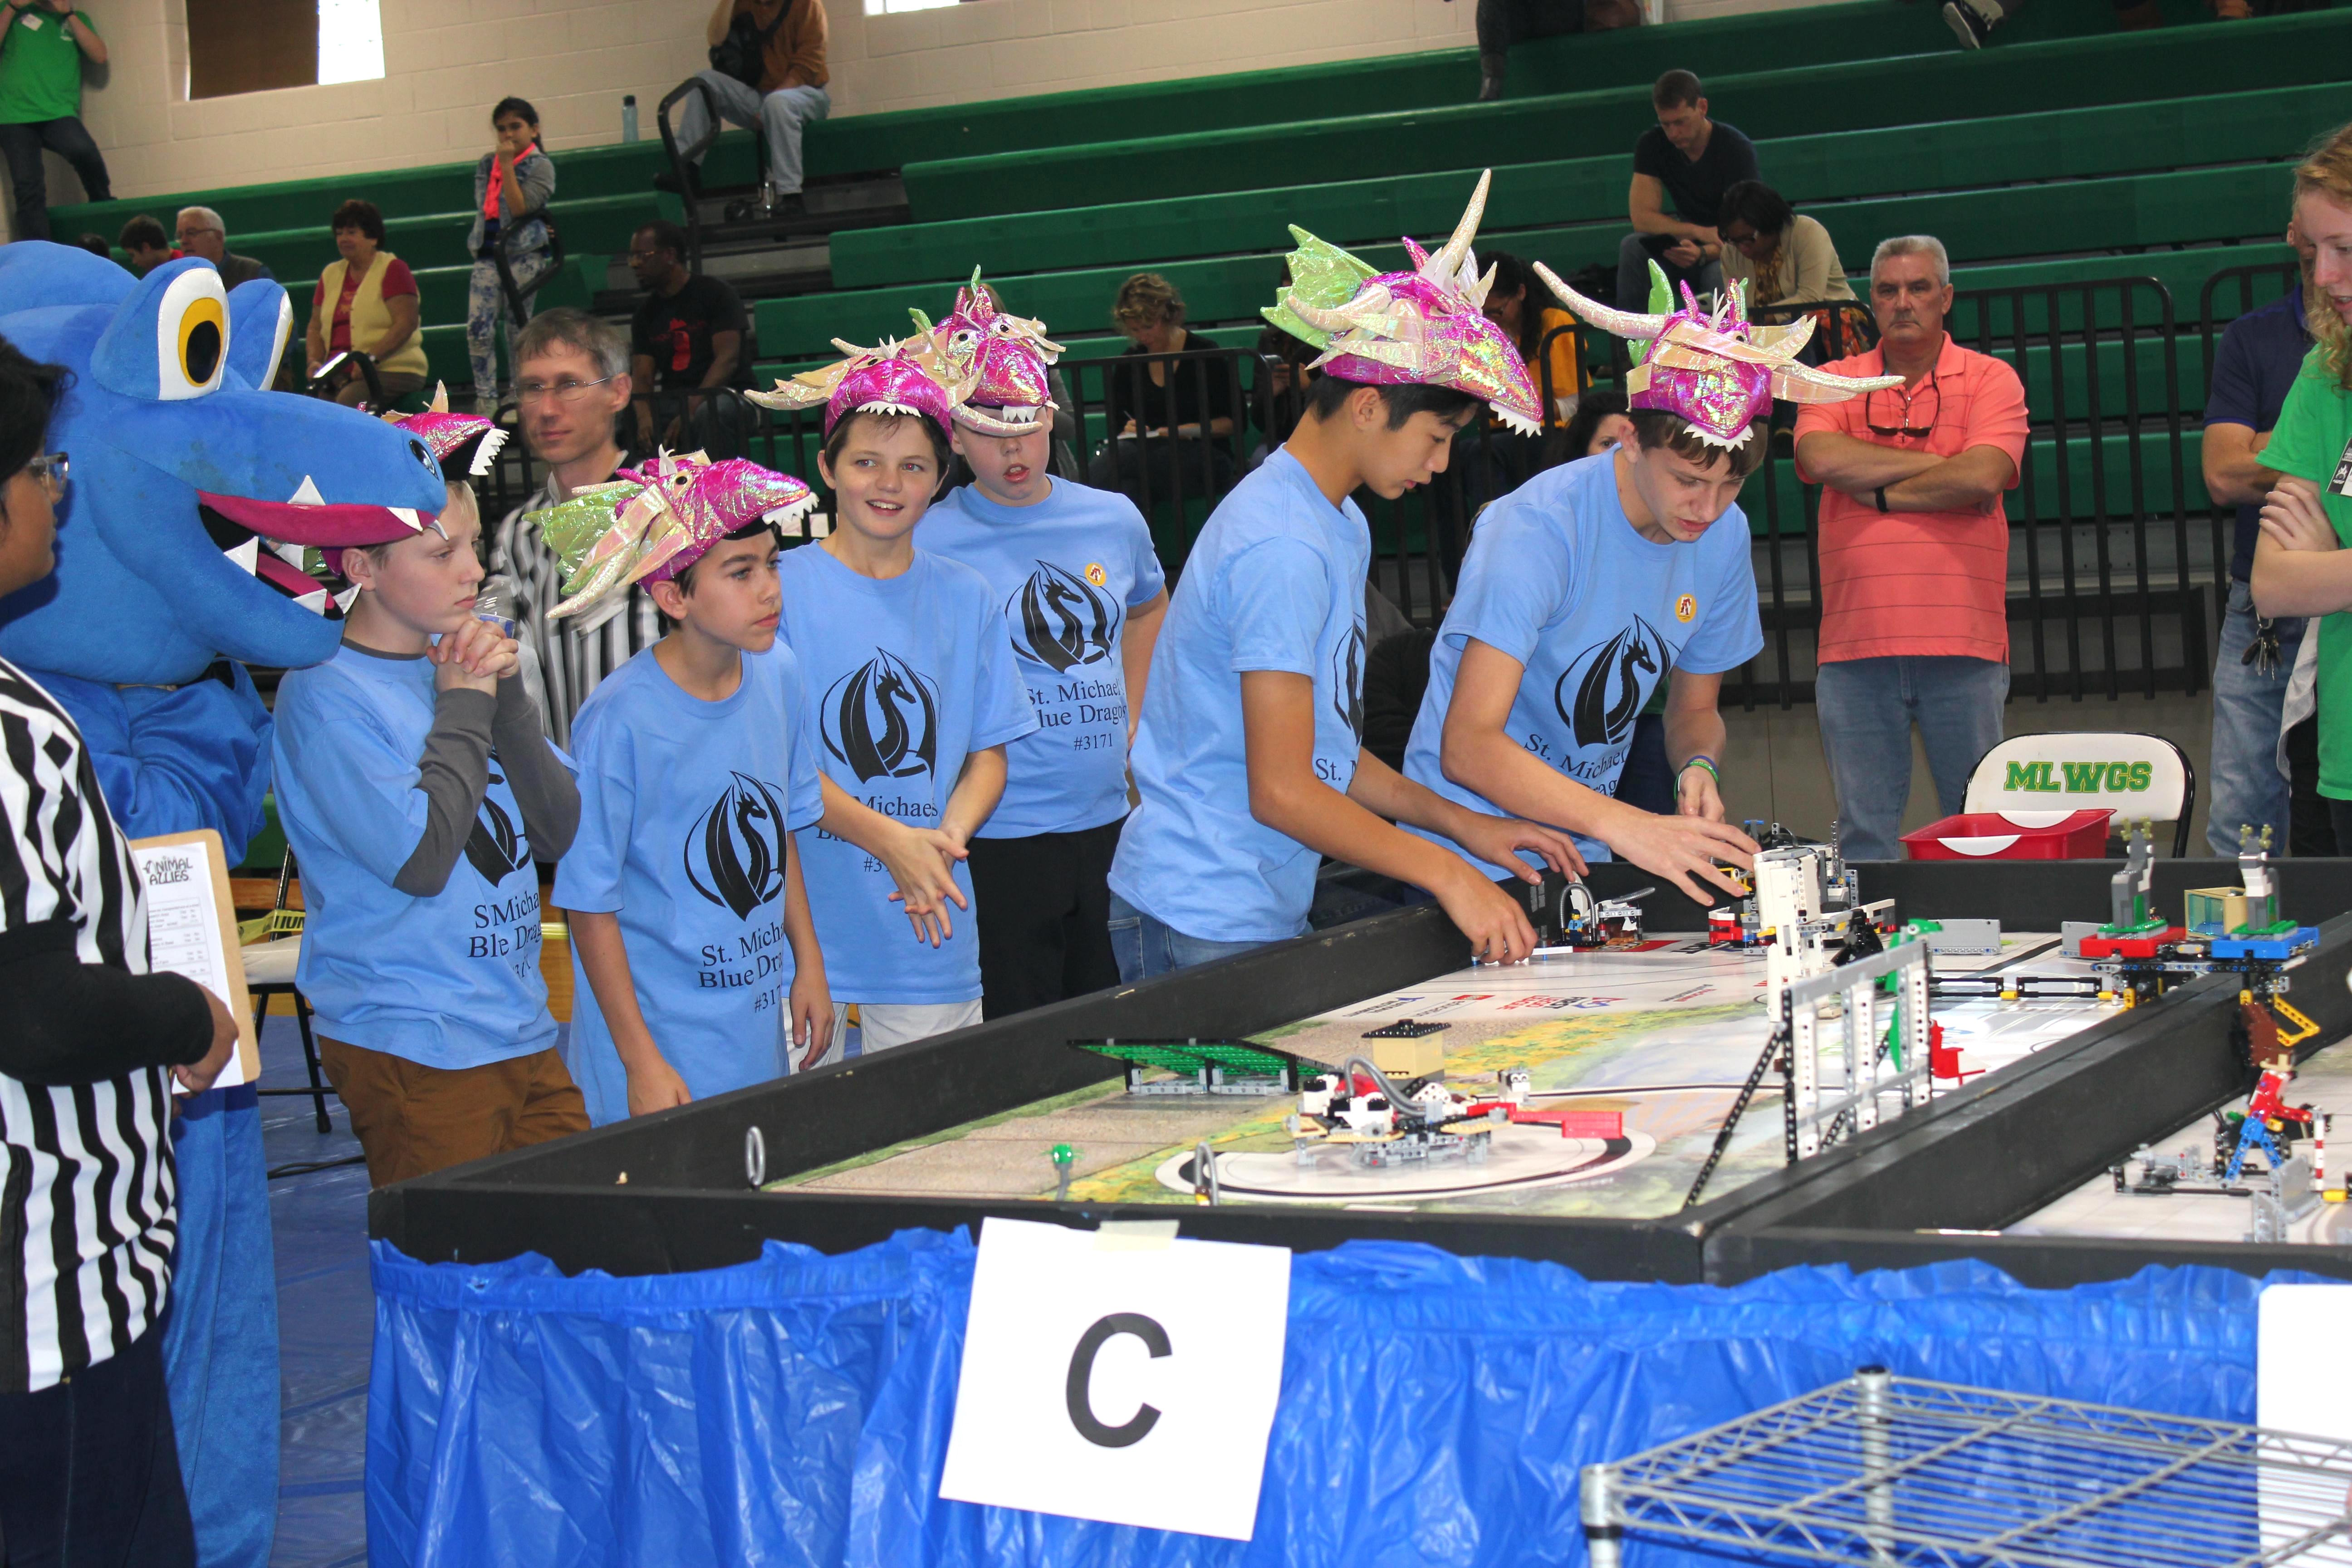 St. Michael's students engaged in a FIRST LEGO League robotics competition.